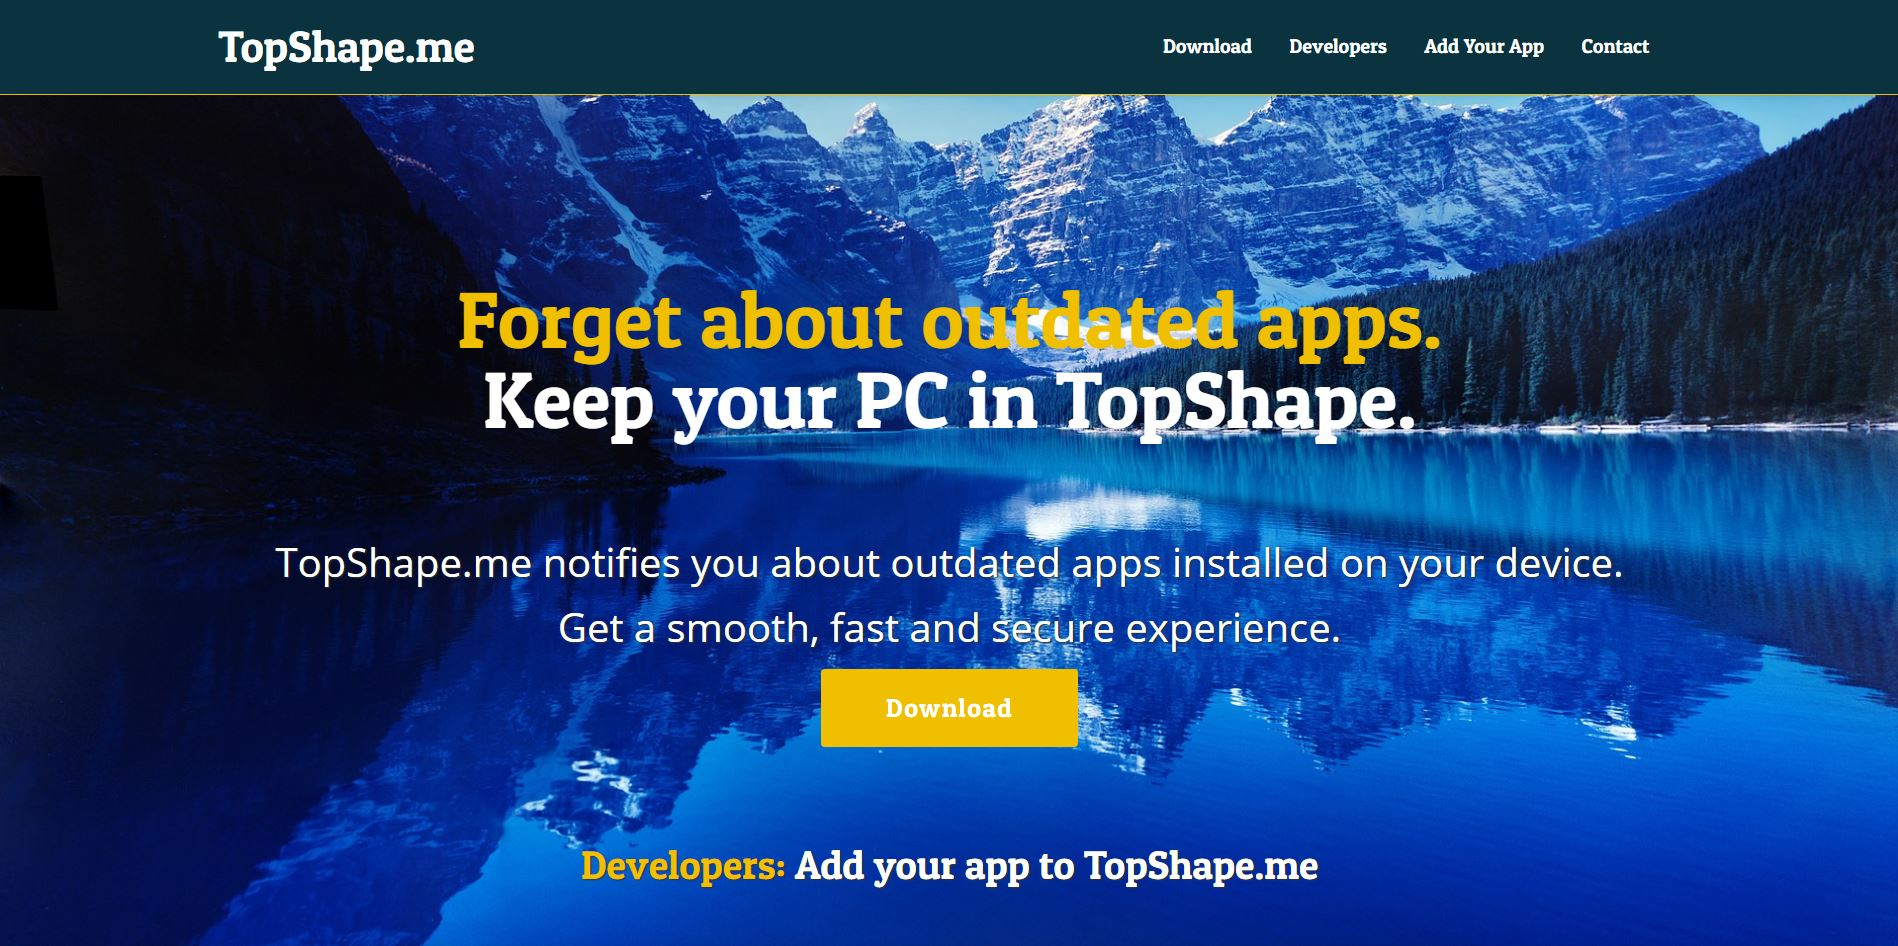 remove topshape.me and related ads in full